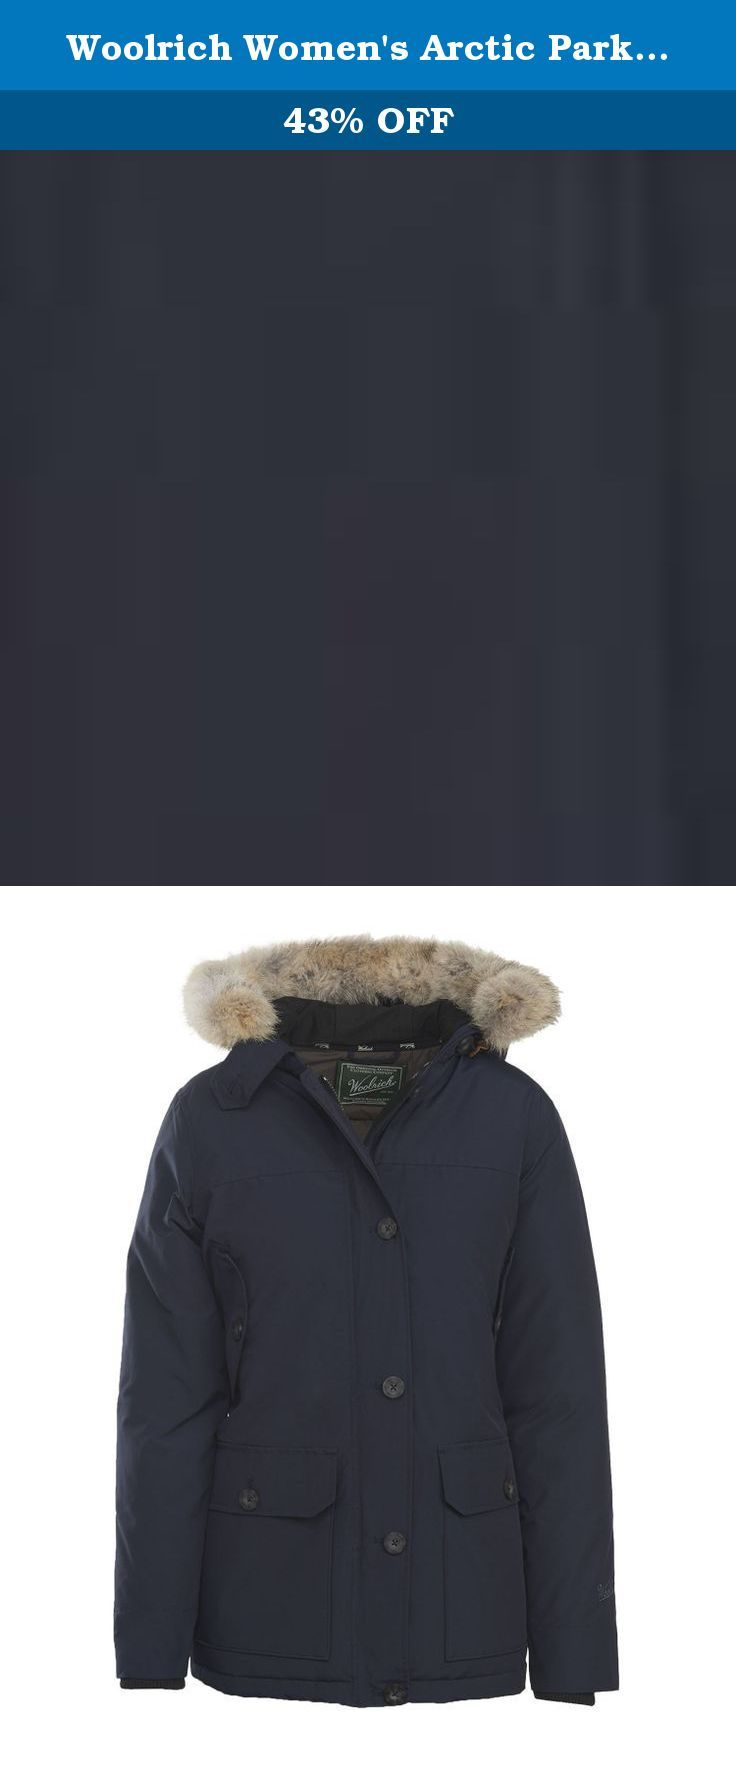 Woolrich Women's Arctic Parka, Deep Navy, Small. Modeled after our men's arctic parka, introduced in 1972 for workers constructing the Alaskan pipeline (where the average winter low is minus 25 degrees Fahrenheit), our women's arctic parka is every bit as durable - with a more flattering fit. Many have braved the most extreme temperatures in this parka, which has more recently achieved Global status as a fashion icon. The generously pocketed parka provides ample warmth and coverage, from…